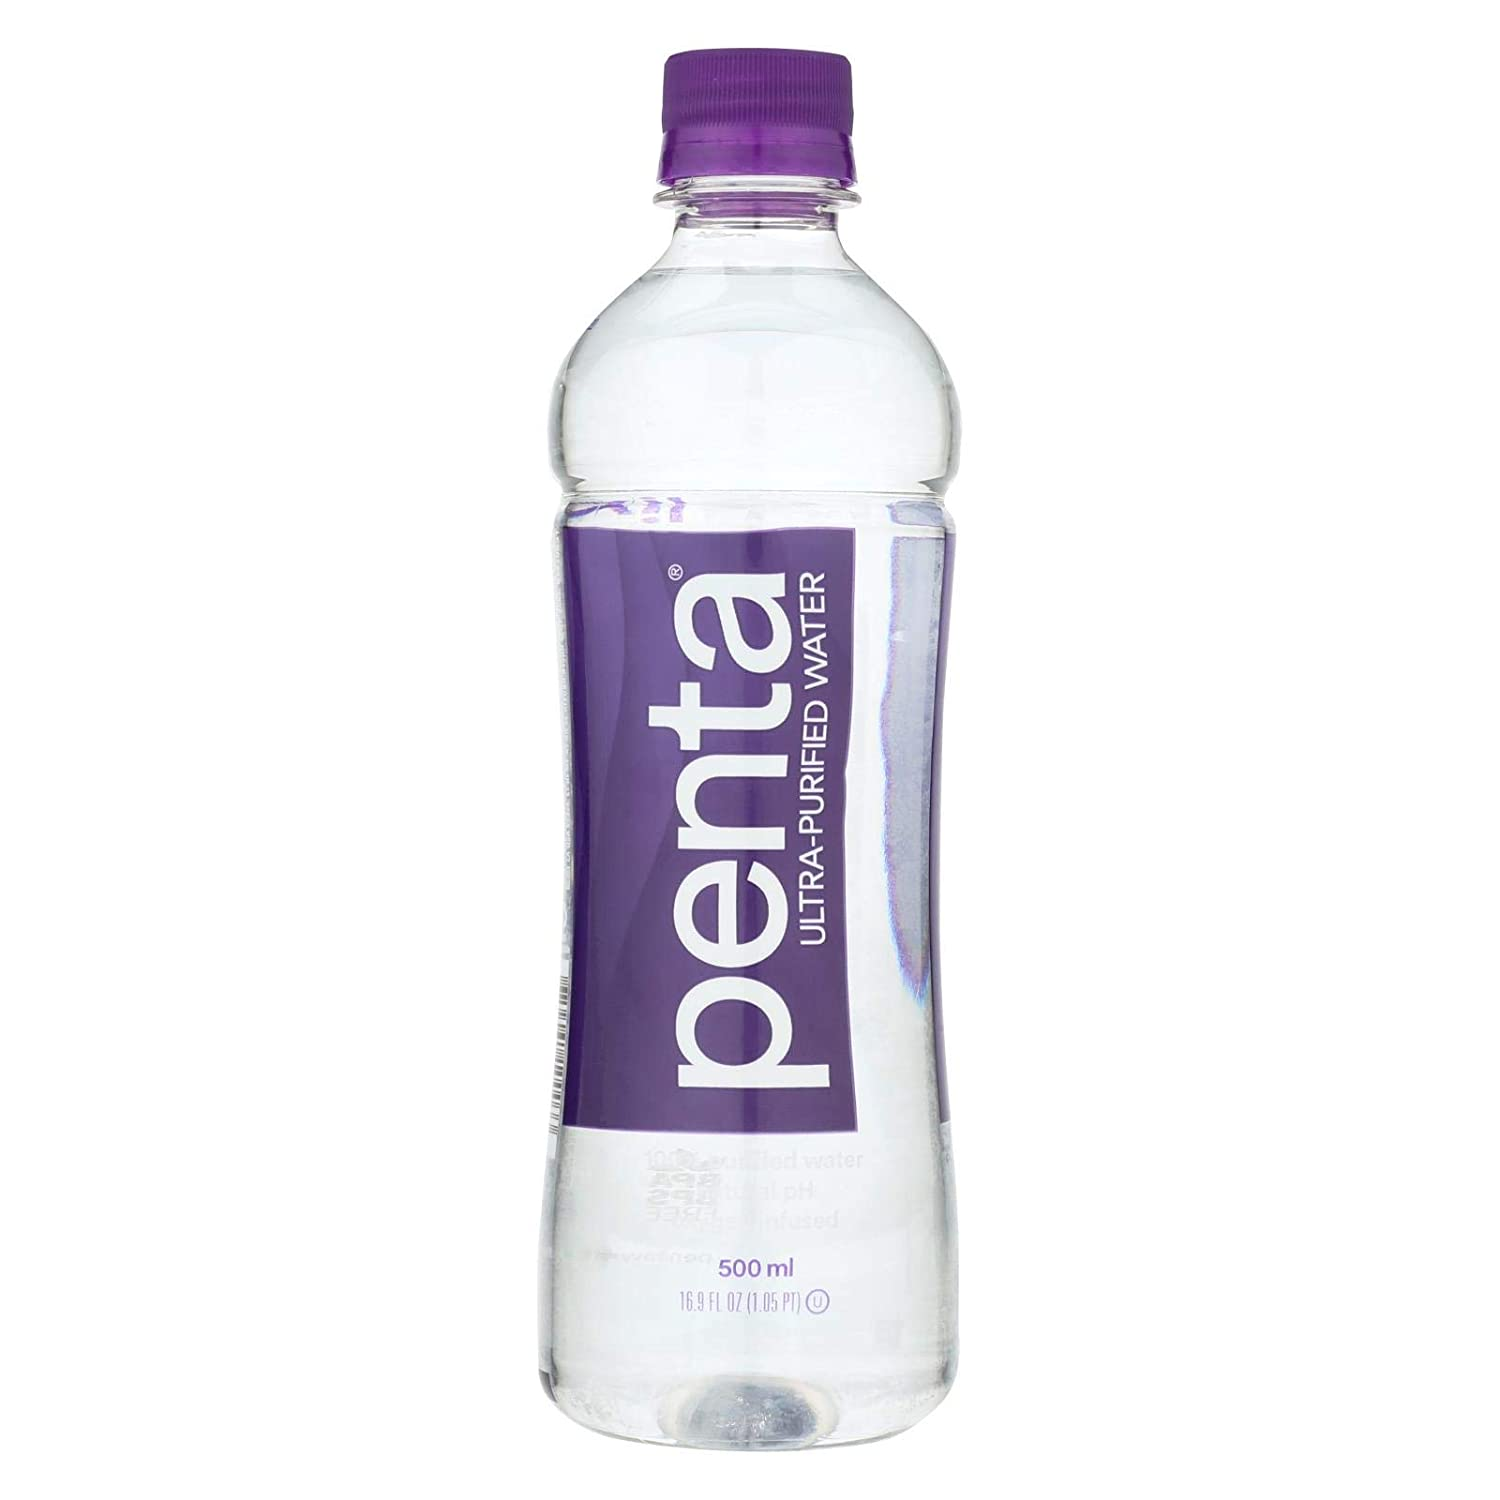 5099dd50ff Amazon.com: Penta Purified Water Purified Drinking Water - 16.9 oz: Sports  & Outdoors